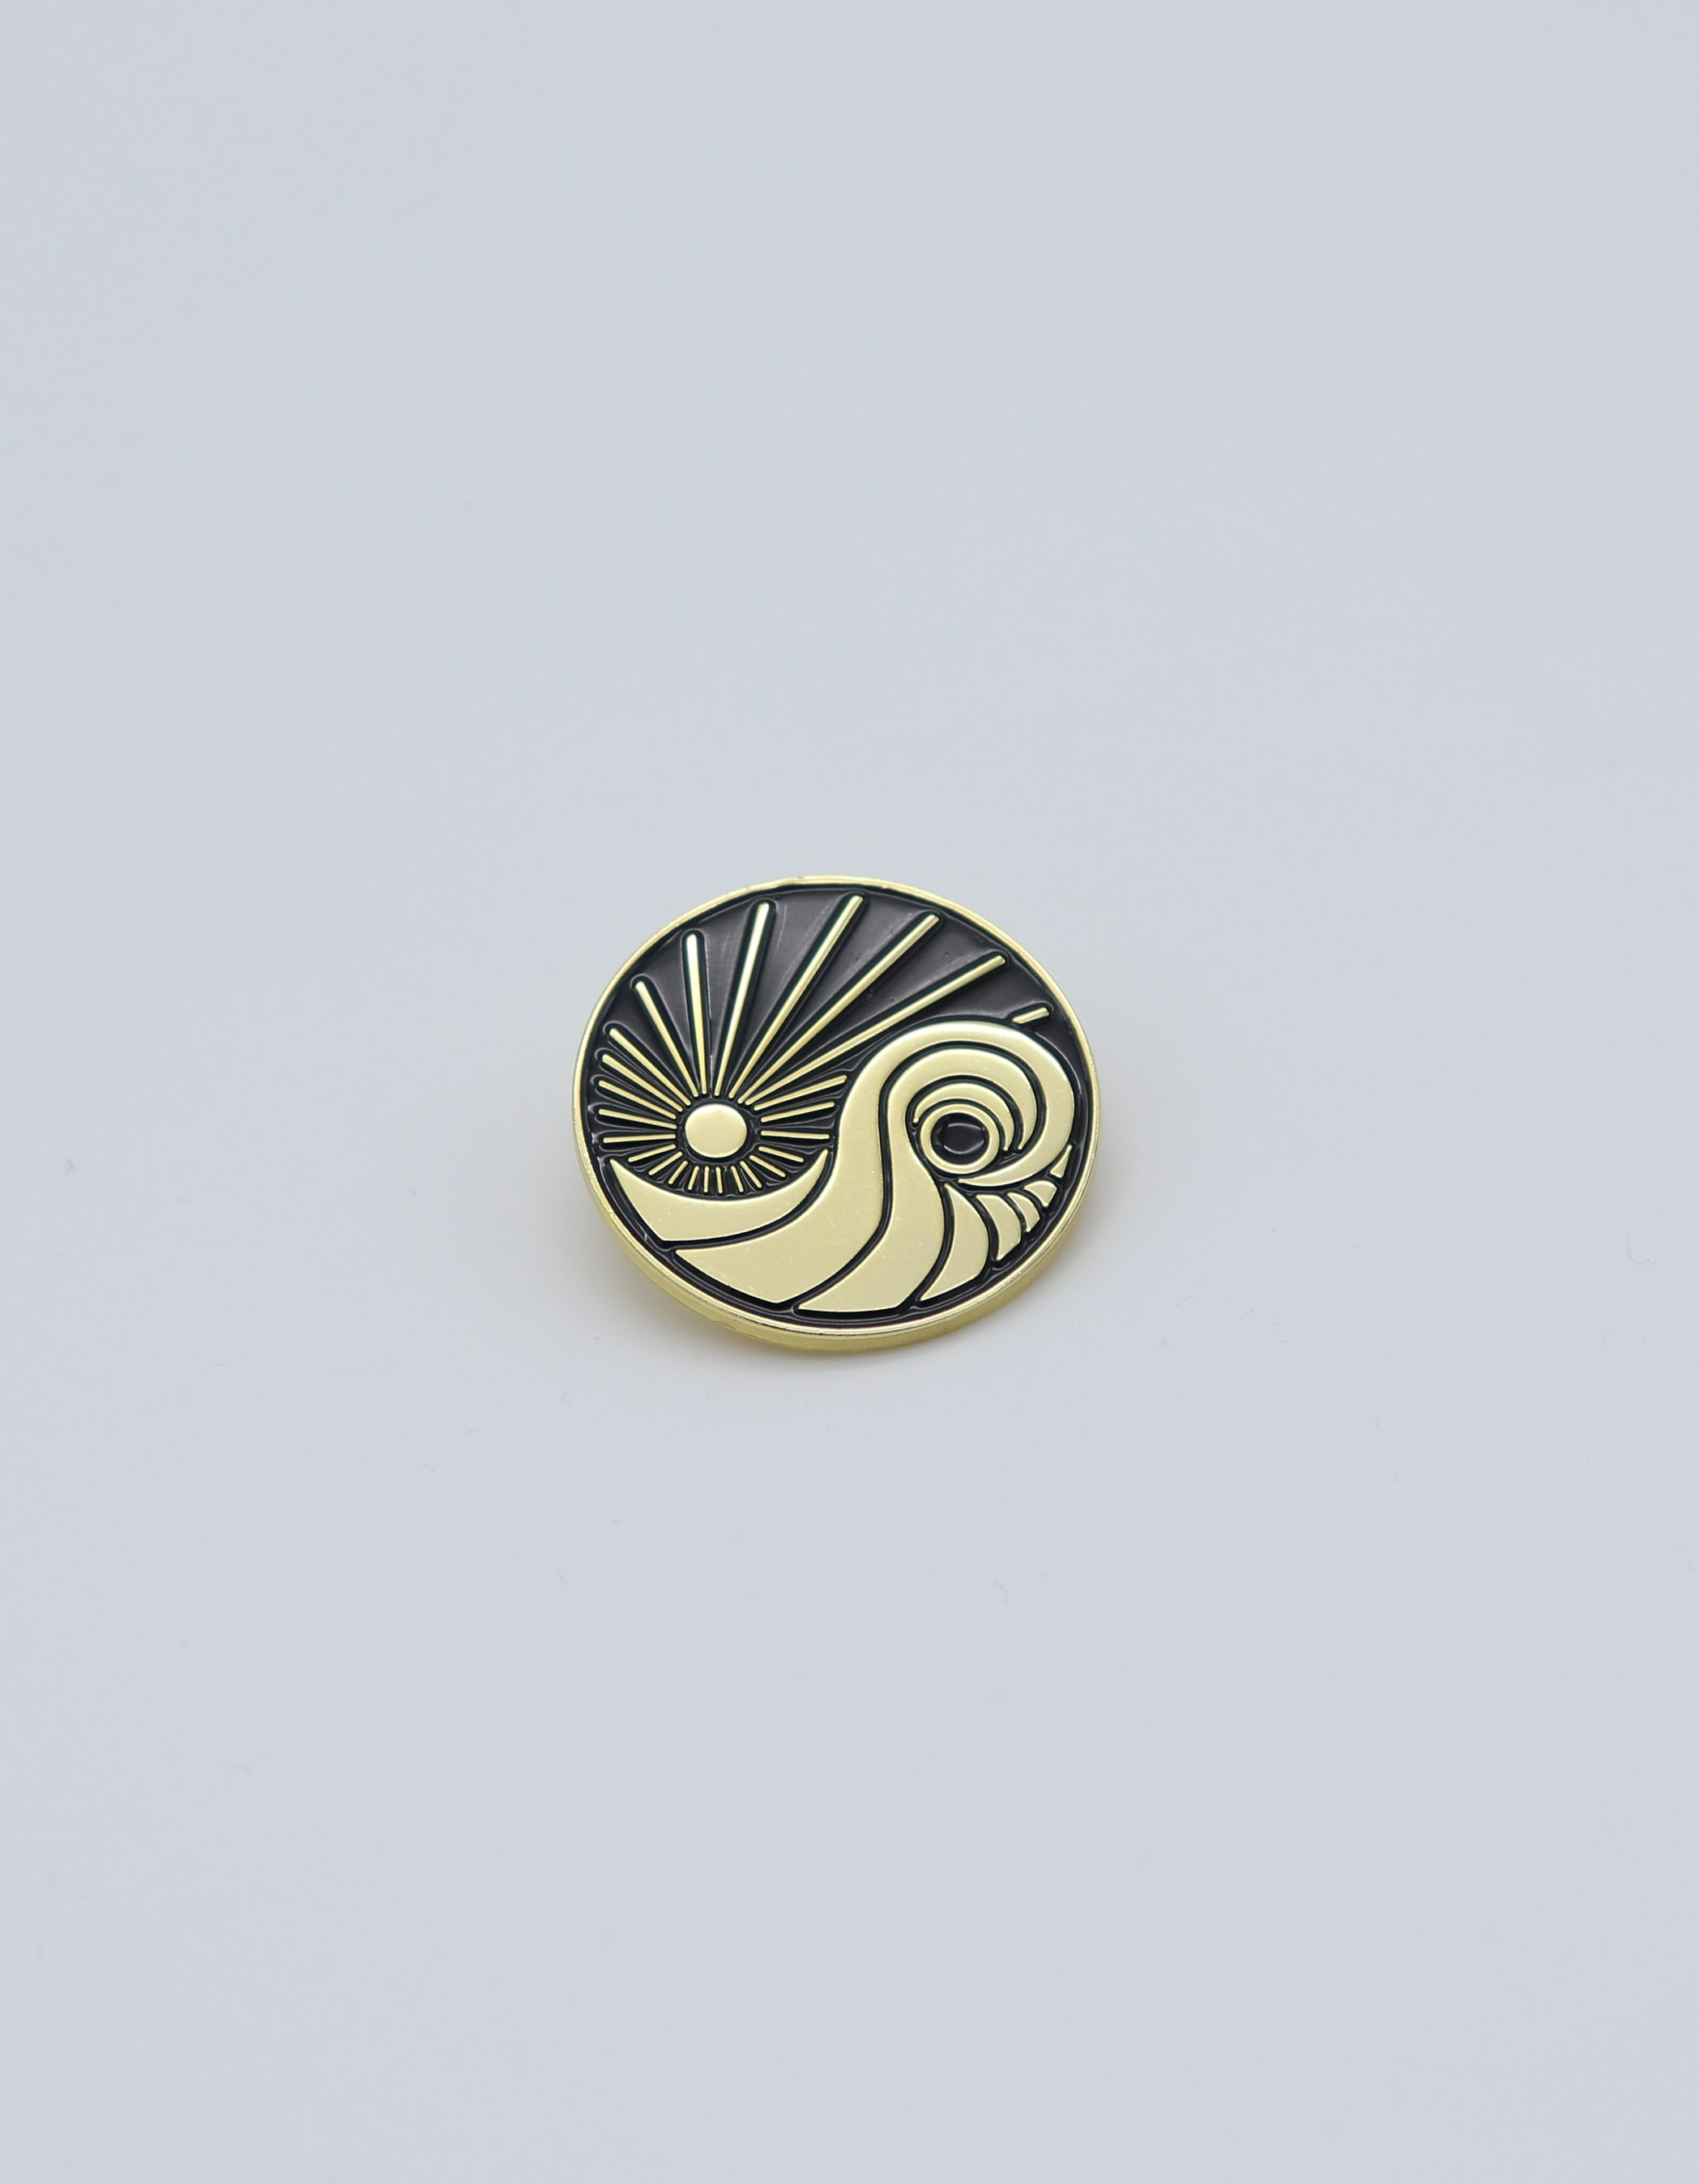 Gold colored circle pin featuring SD Trading Co's Logo against a black background